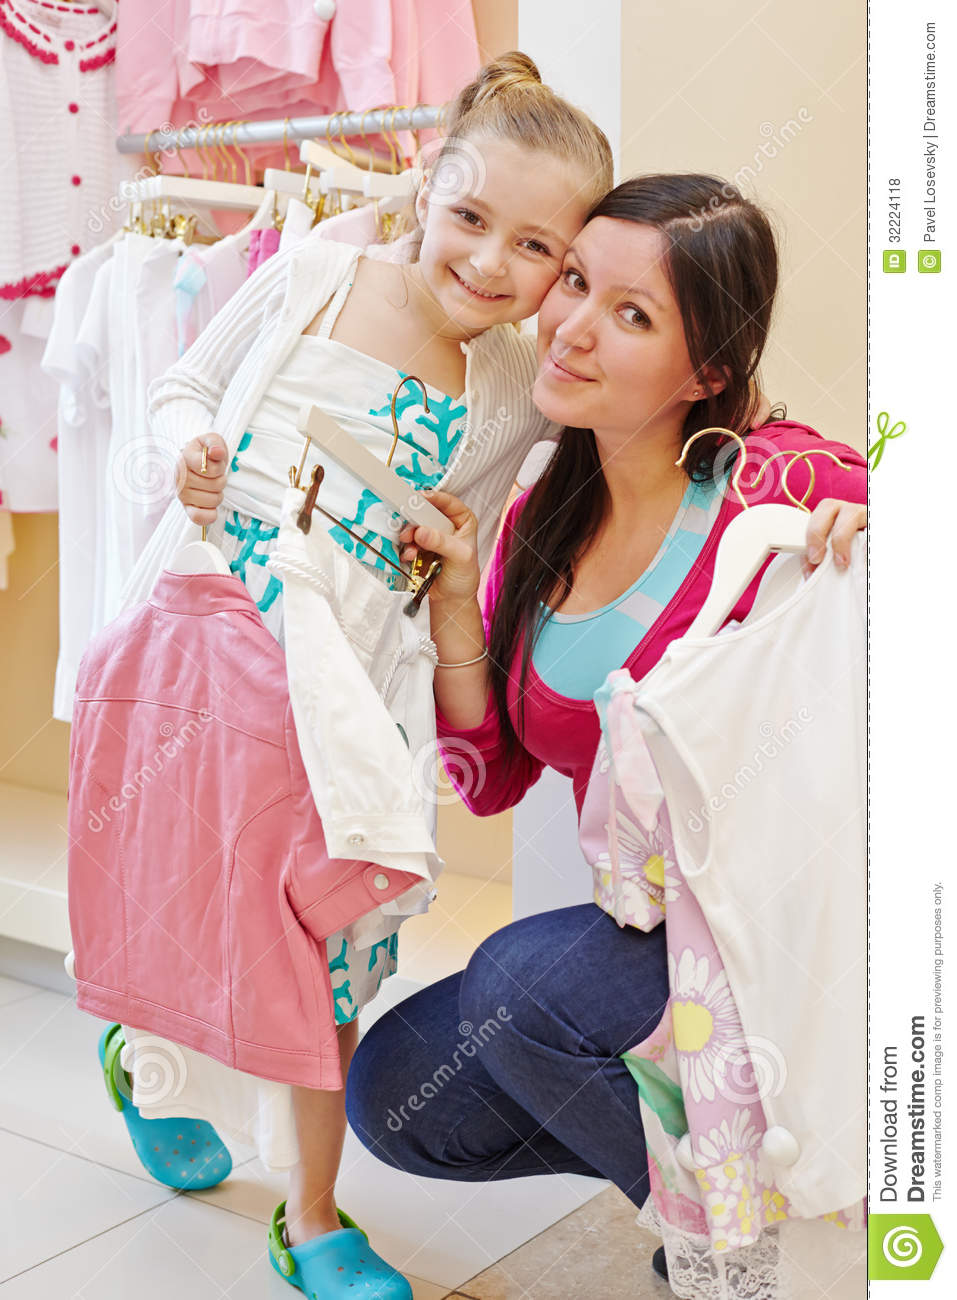 Stores for girl clothes. Clothing stores